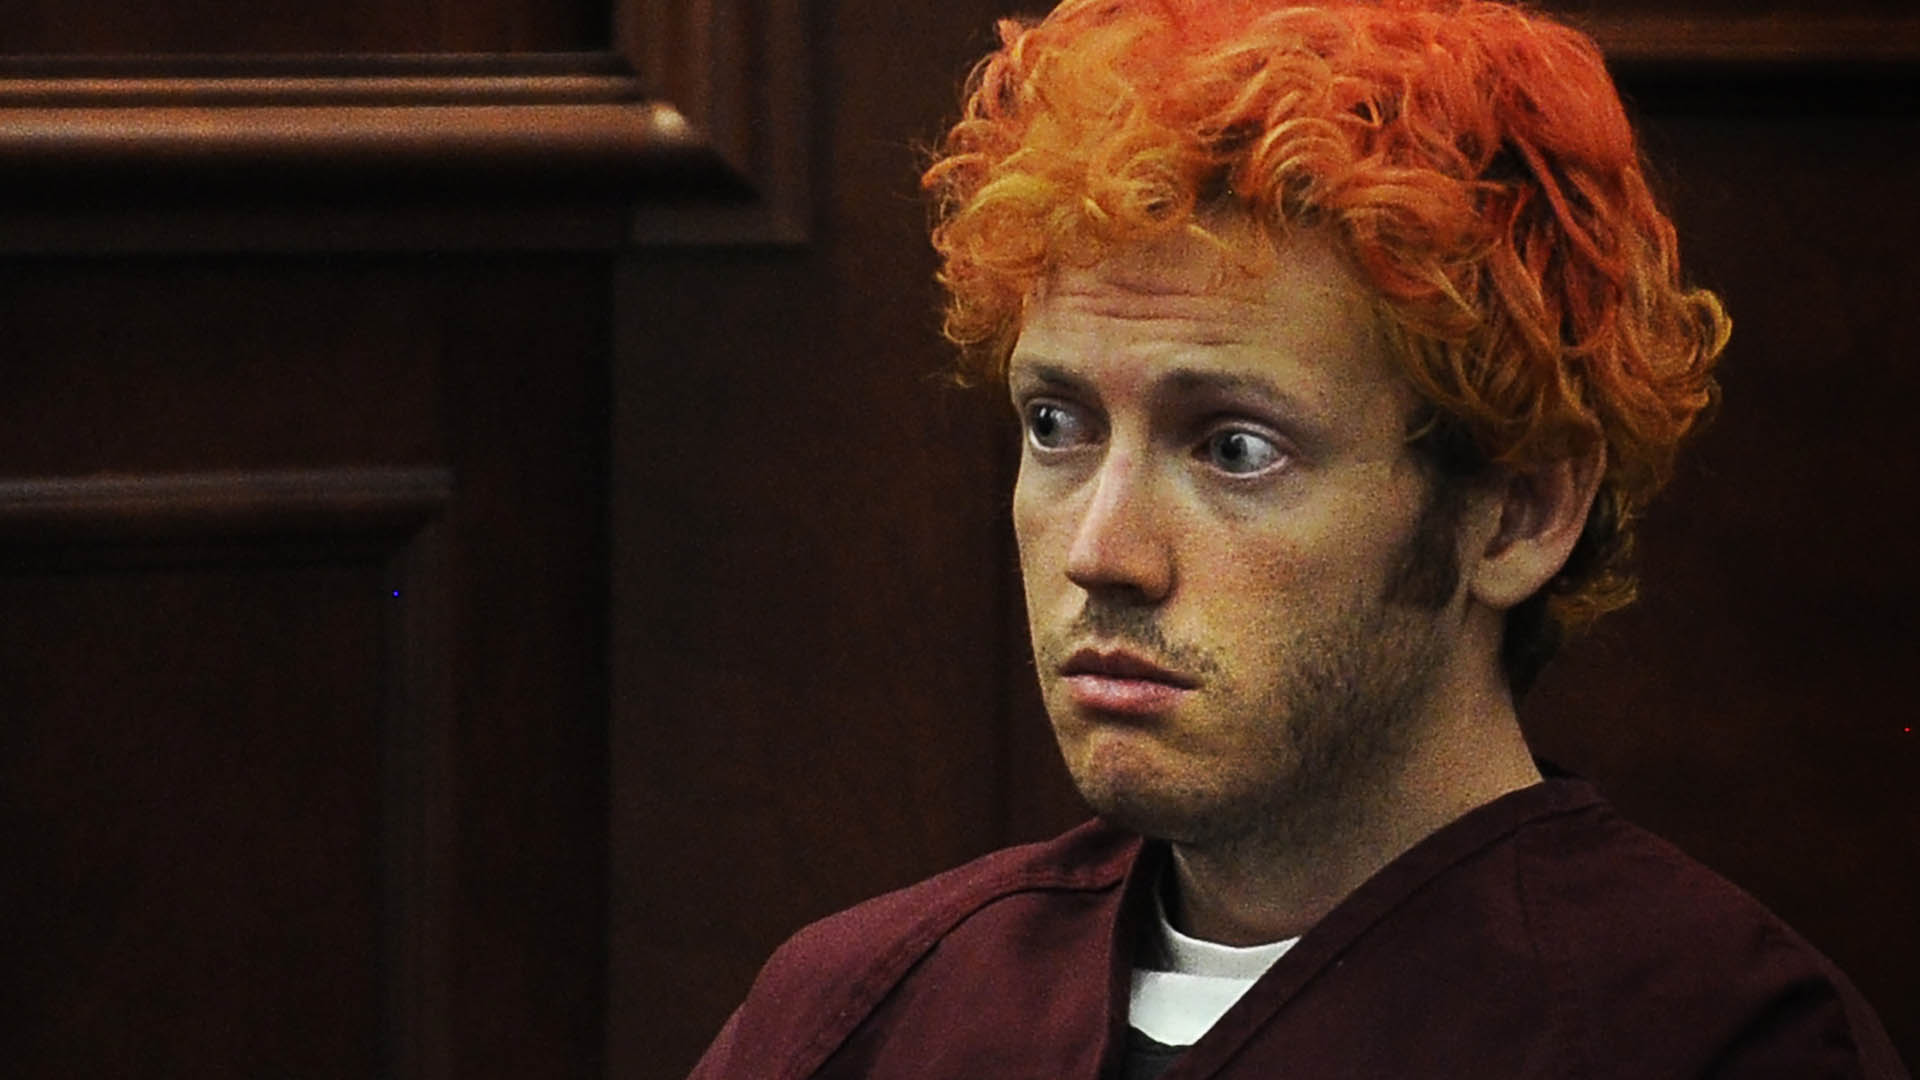 The Aurora Theater Shooter: Insights from a Psychiatrist Who Interviewed Mass Murderer James Holmes